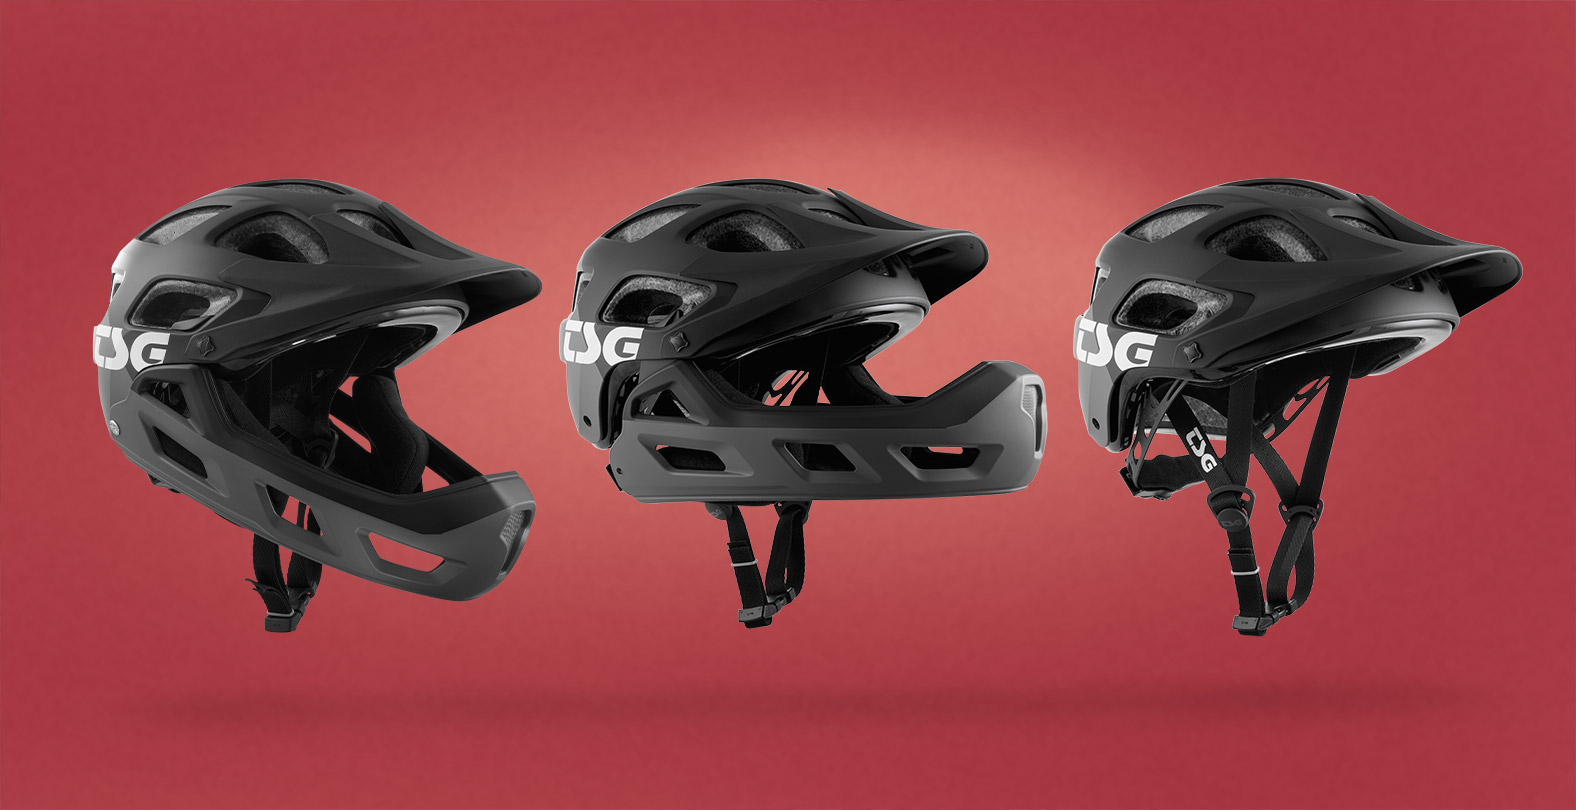 Seek FR Mountain Bike Helmet with removable chin part